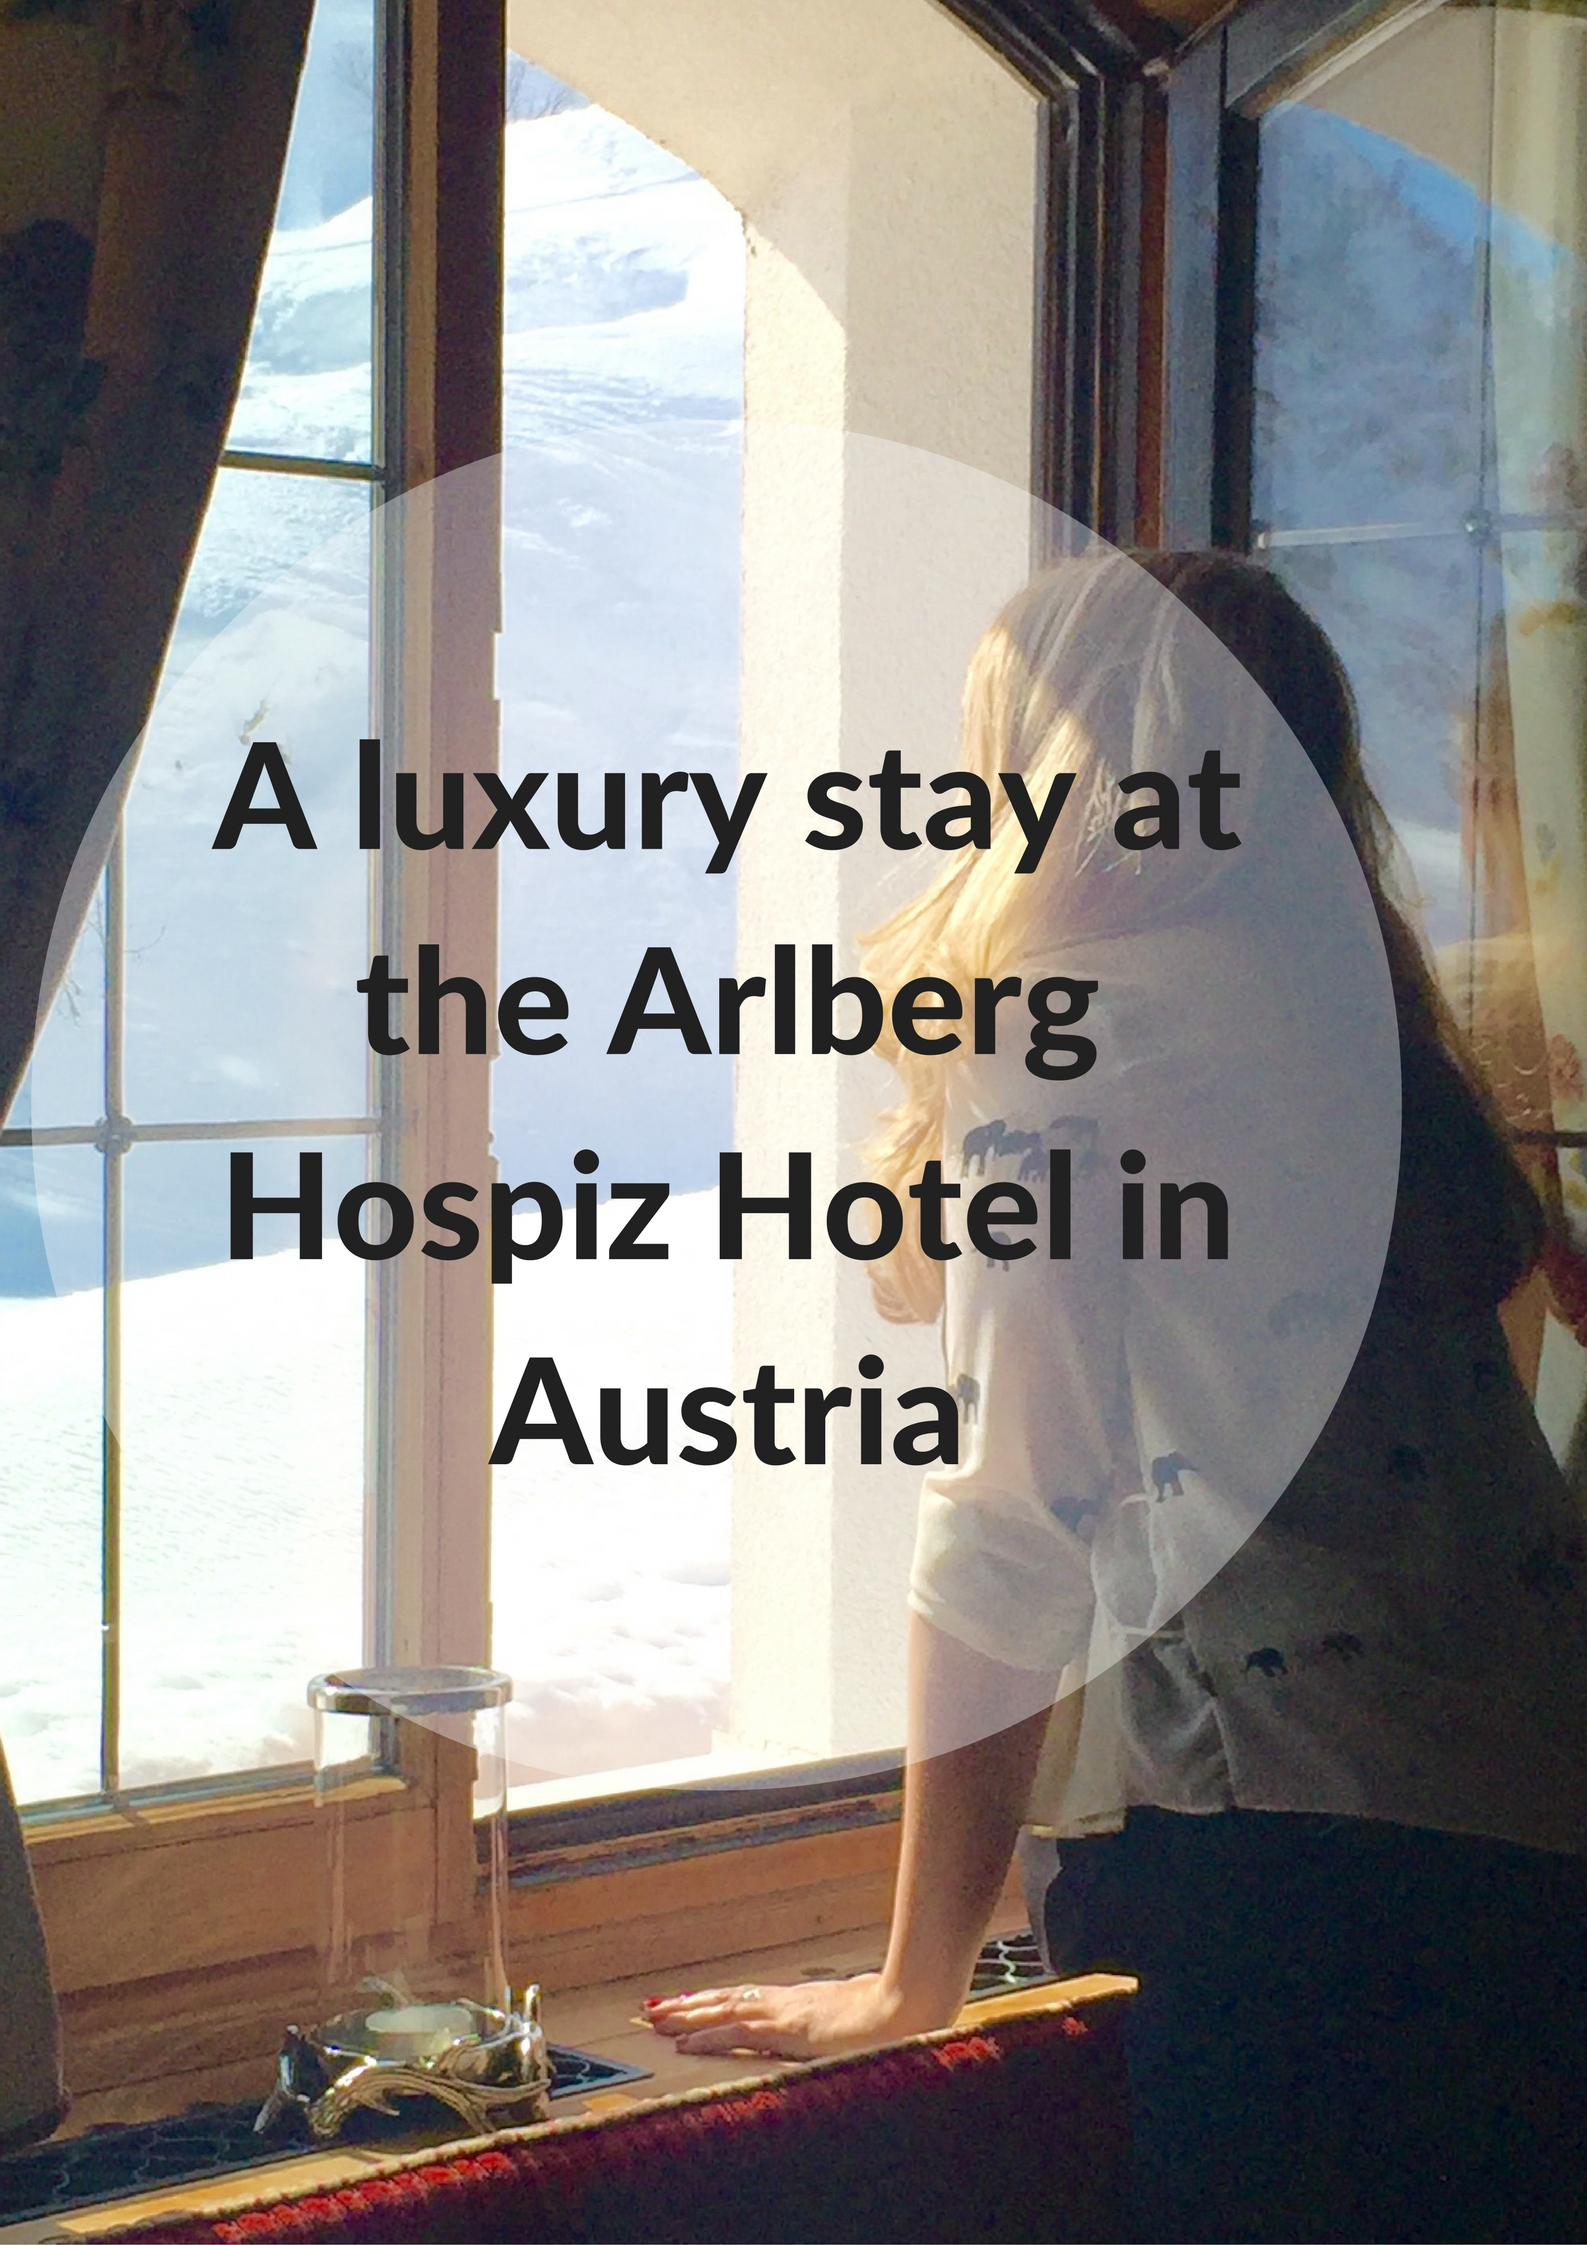 A luxury stay at the Arlberg Hospiz Hotel in Austria